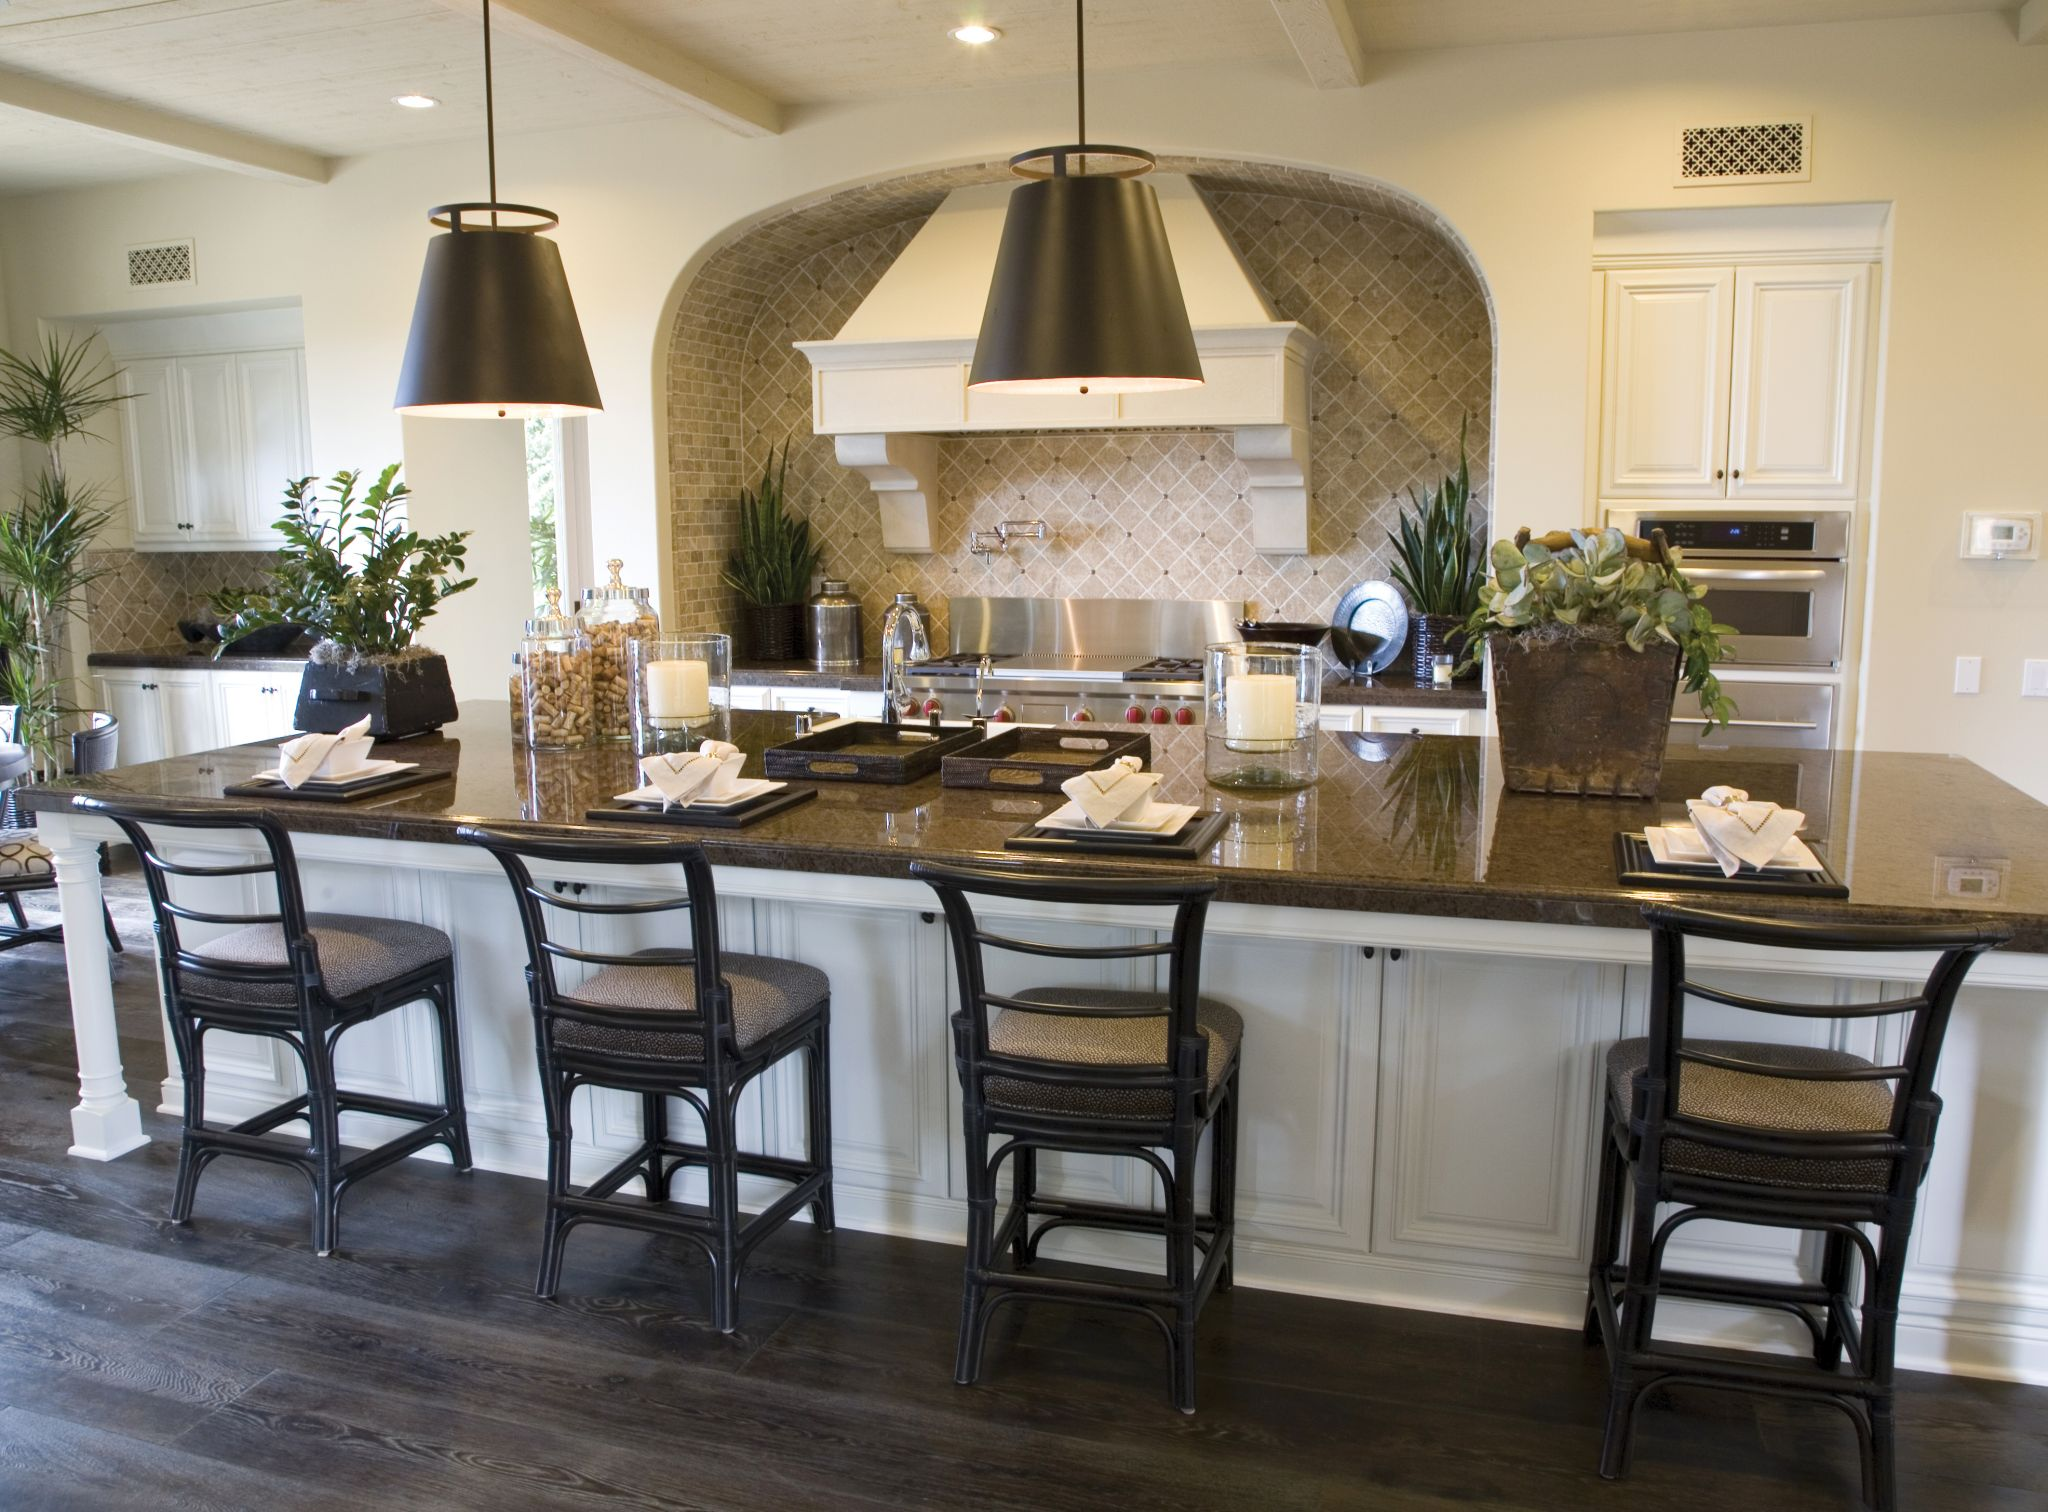 The size and weight of a large kitchen island can create floor deflection and poor performance; in these areas, the size of the members under the dead load can be increased or spacing tightened up. Photo © BigStockPhoto/Chris Rodenberg